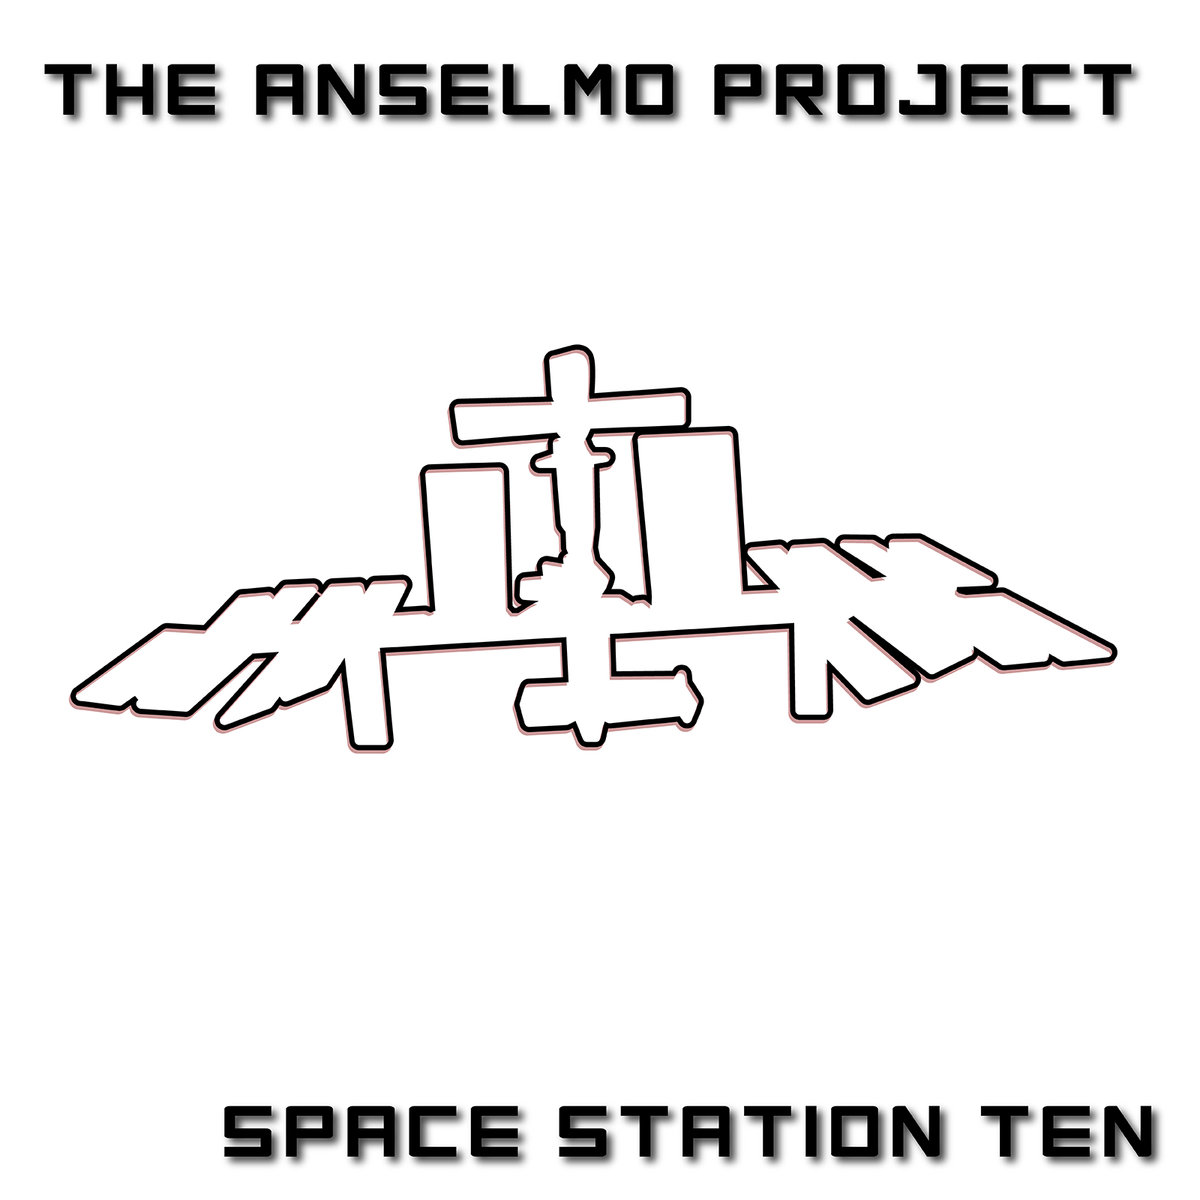 The Anselmo Project - Space Station Ten